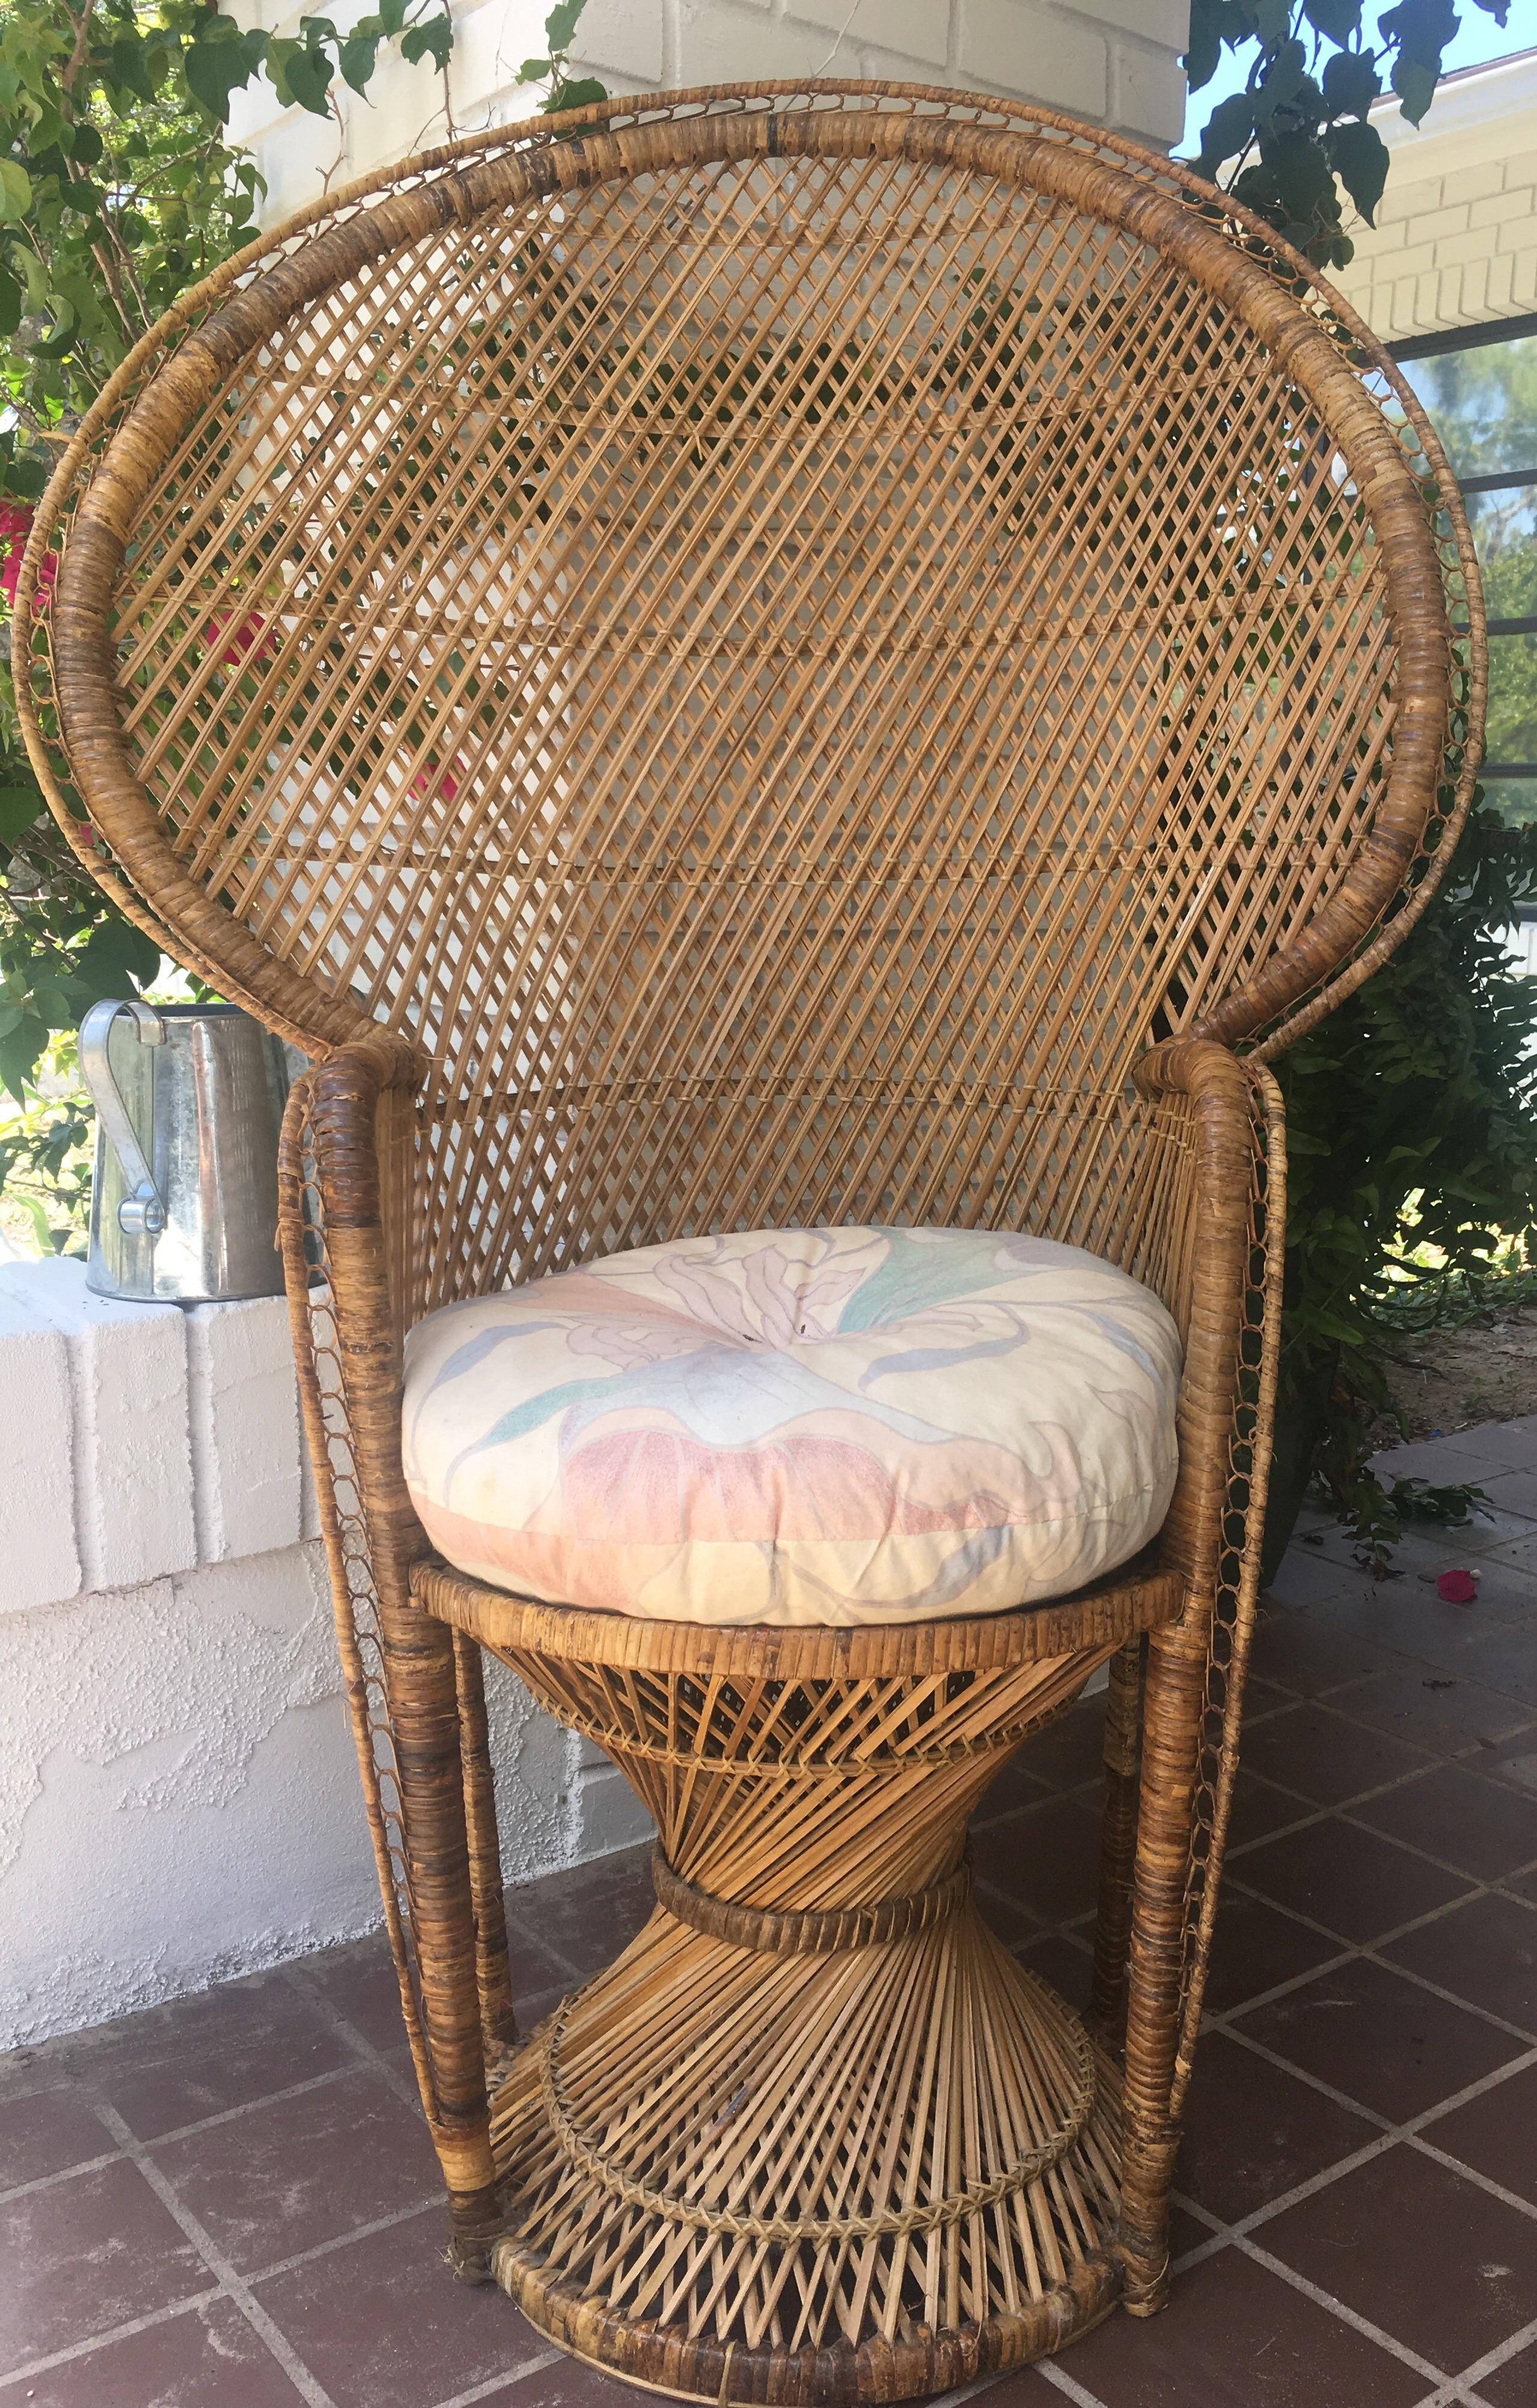 Beautiful Vintage Peacock Rattan Wicker Chair In Good Vintage Condition!  Handmade Chair With A Lot